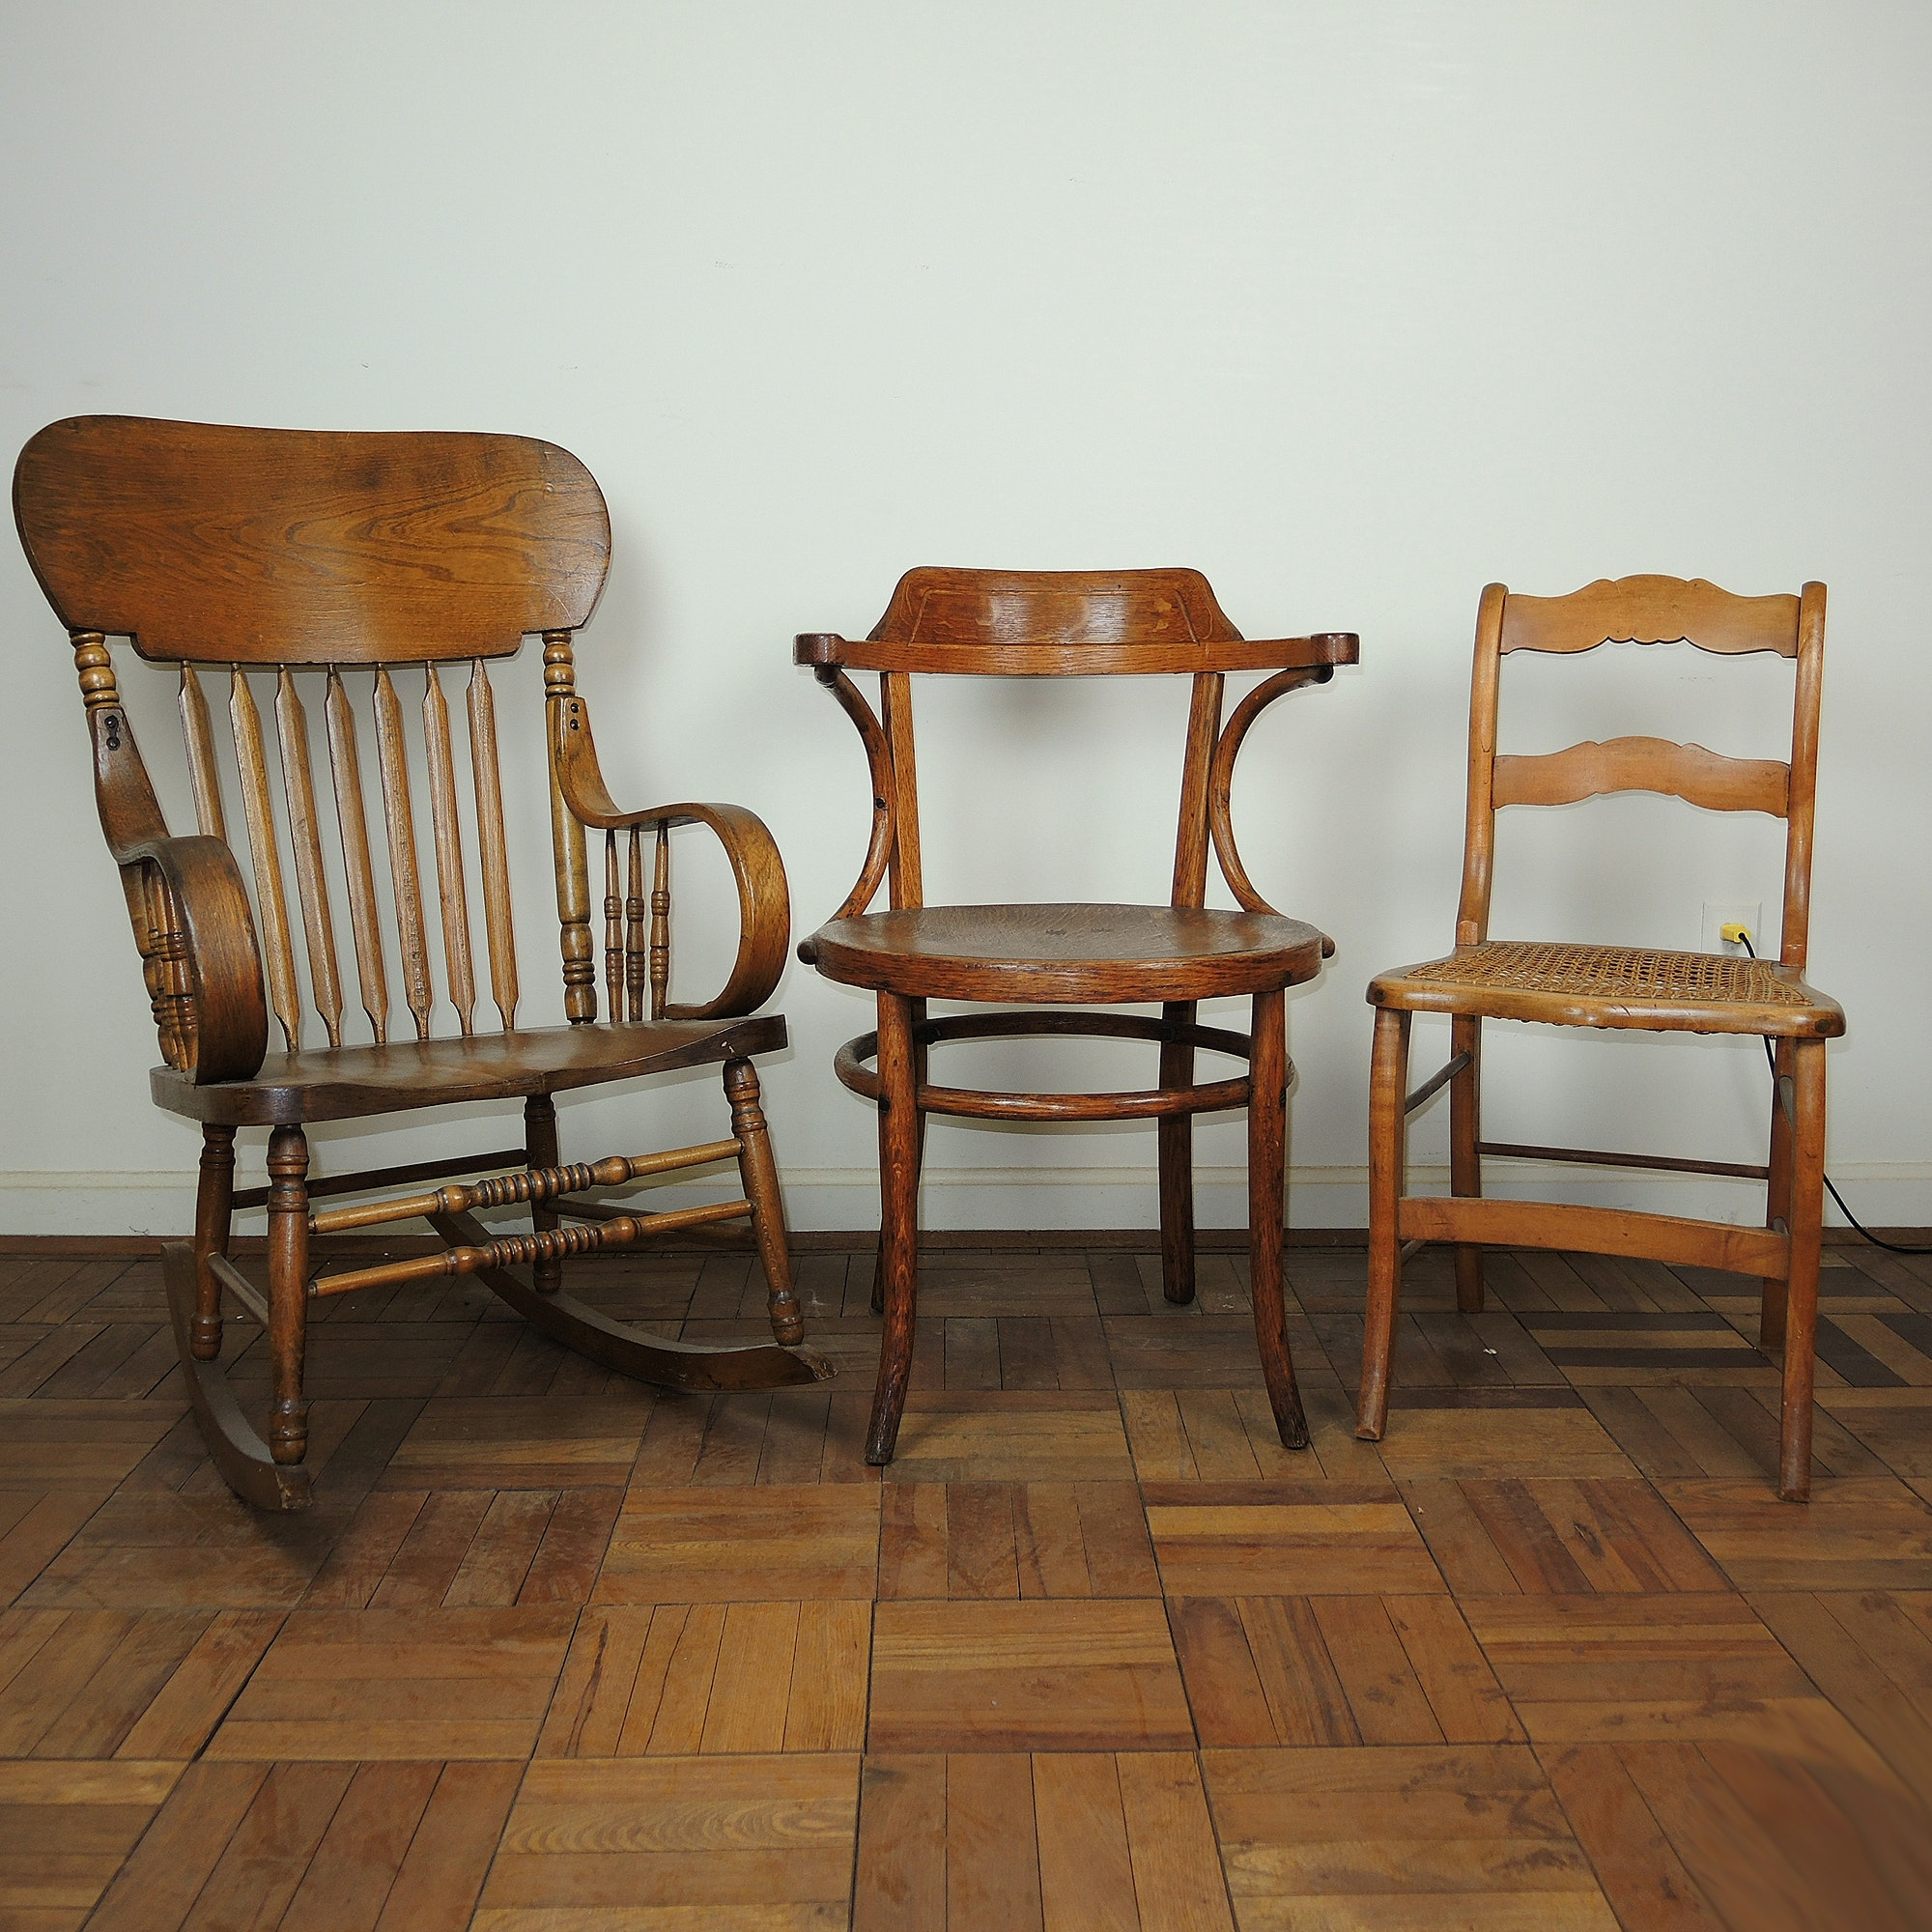 Vintage Oak Occasional Chairs and Rocking Chair